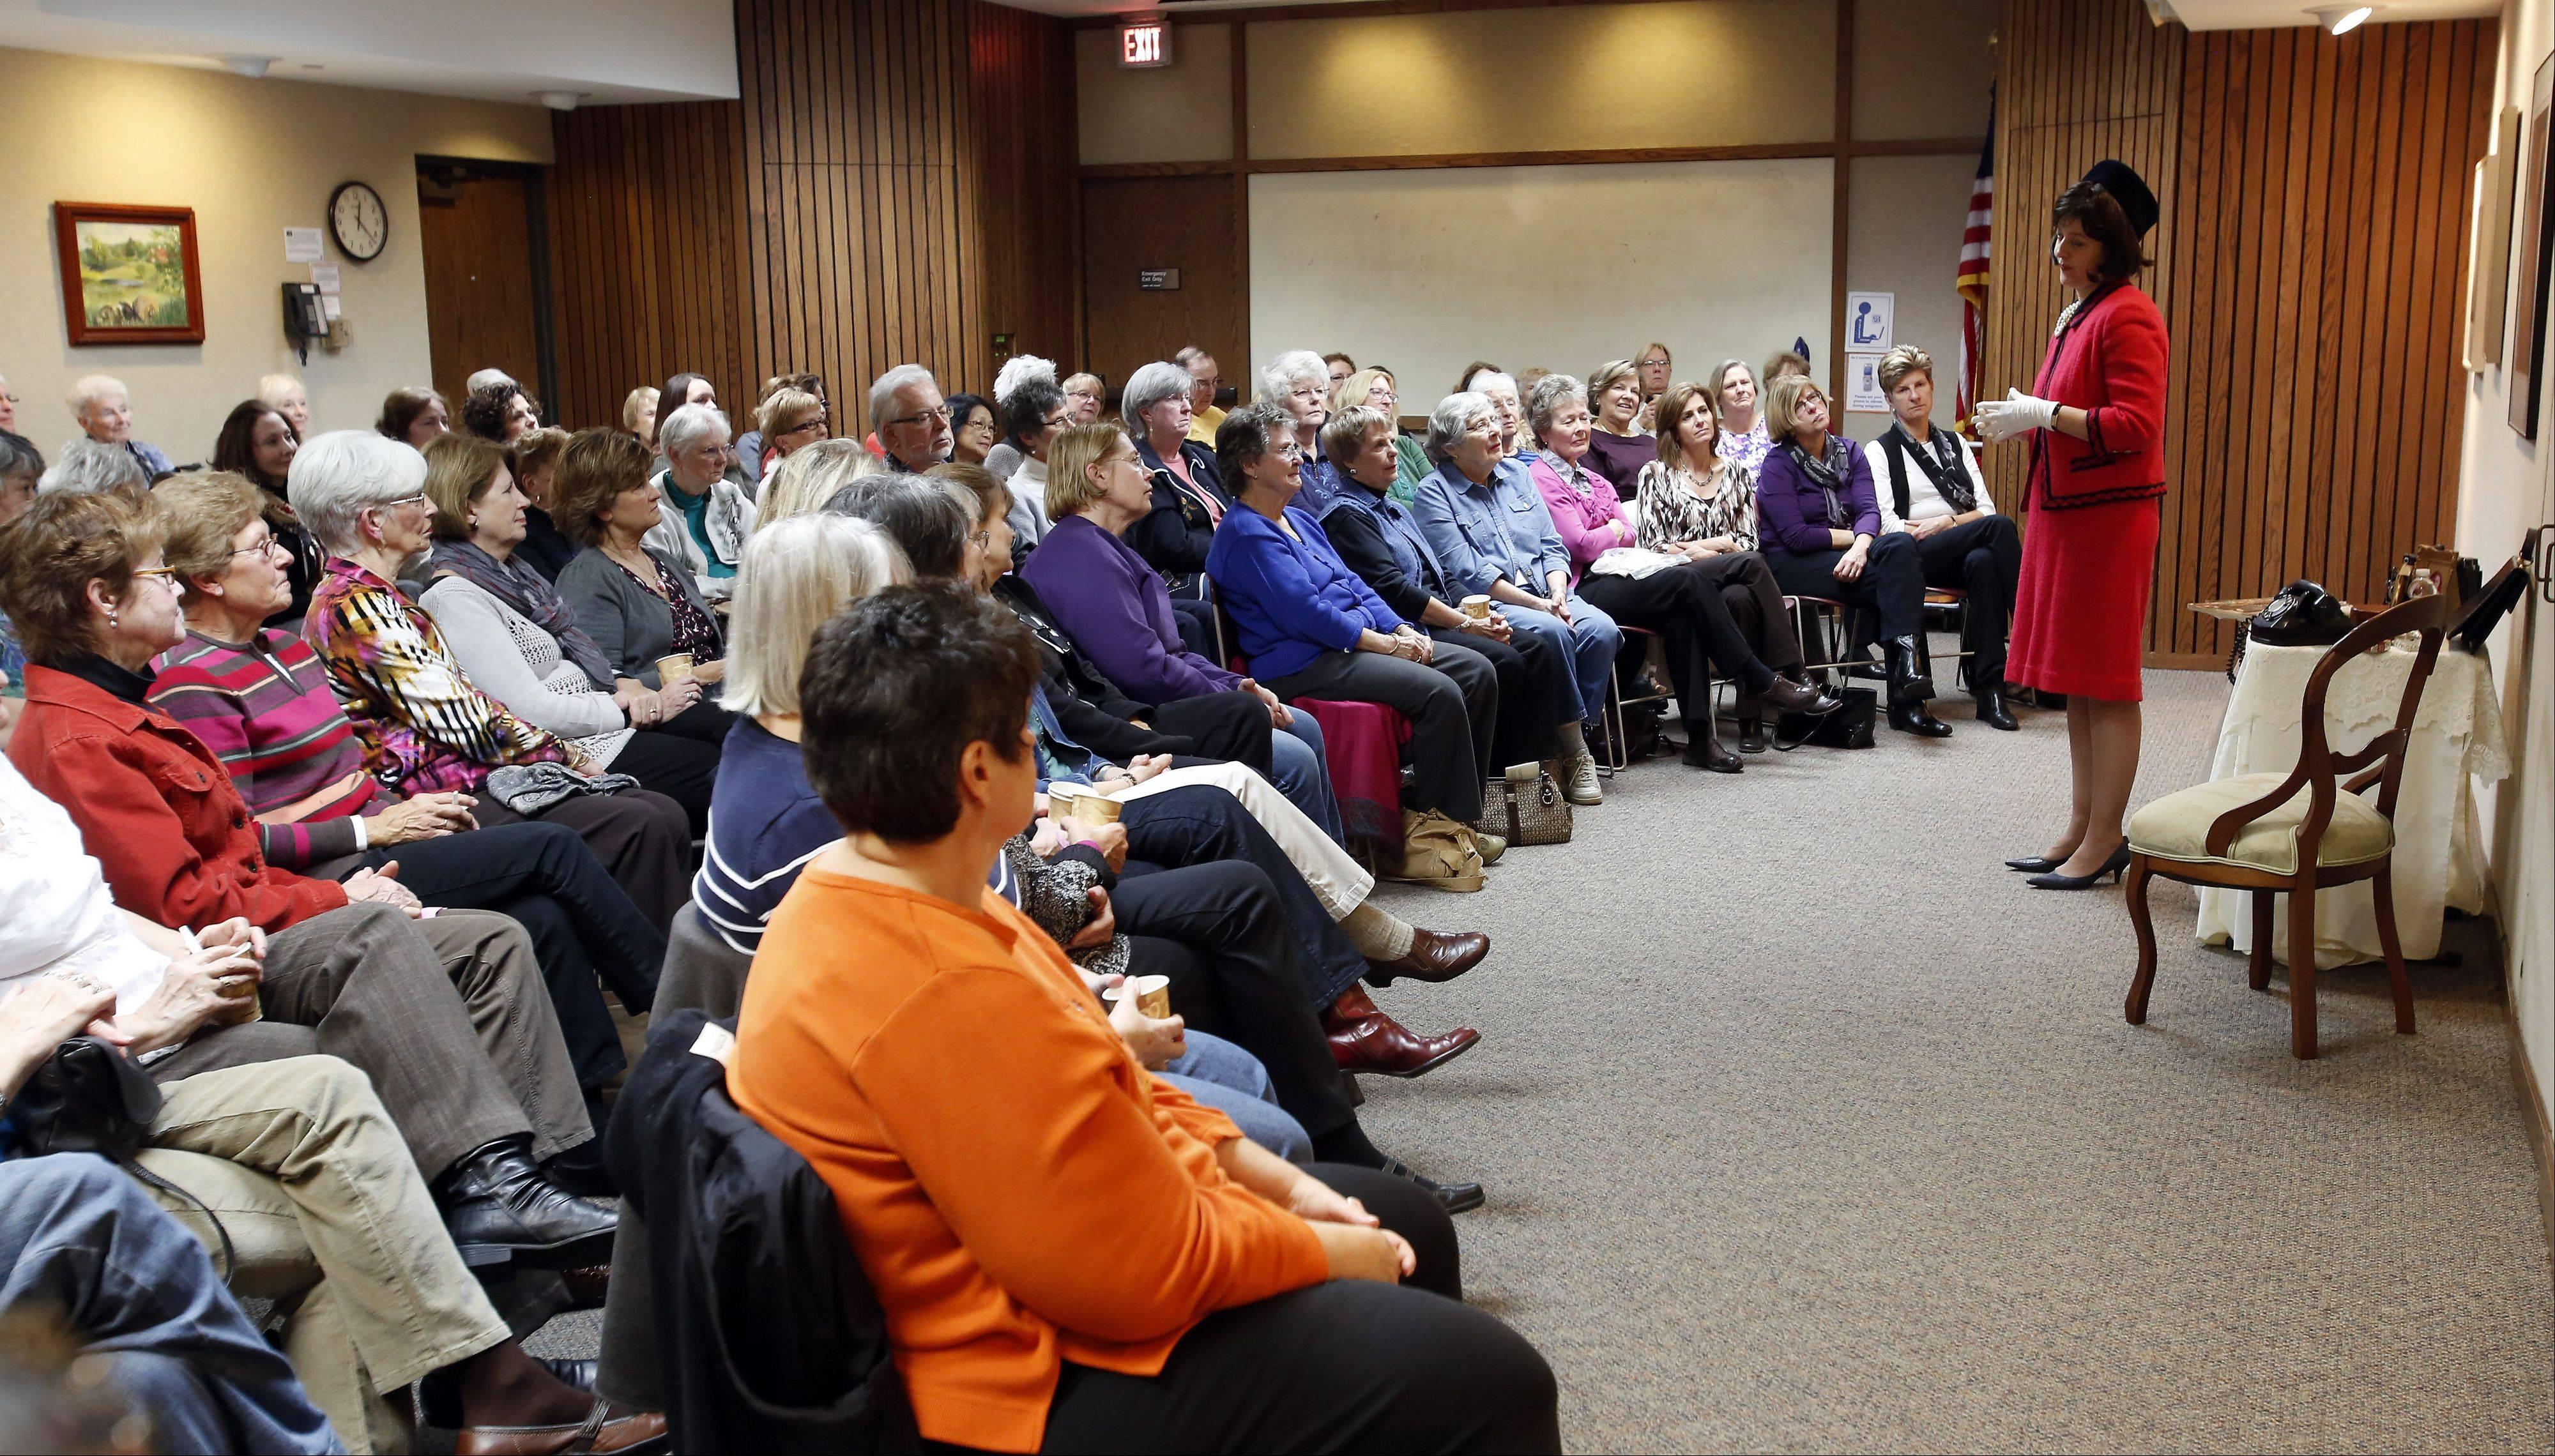 Actress and historian Leslie Goddard portrays Jacqueline Kennedy to a packed room at a special program commemorating the 50th anniversary of President John F. Kennedy�s death Tuesday in the Huntley Meeting Room at the St. Charles Public Library.